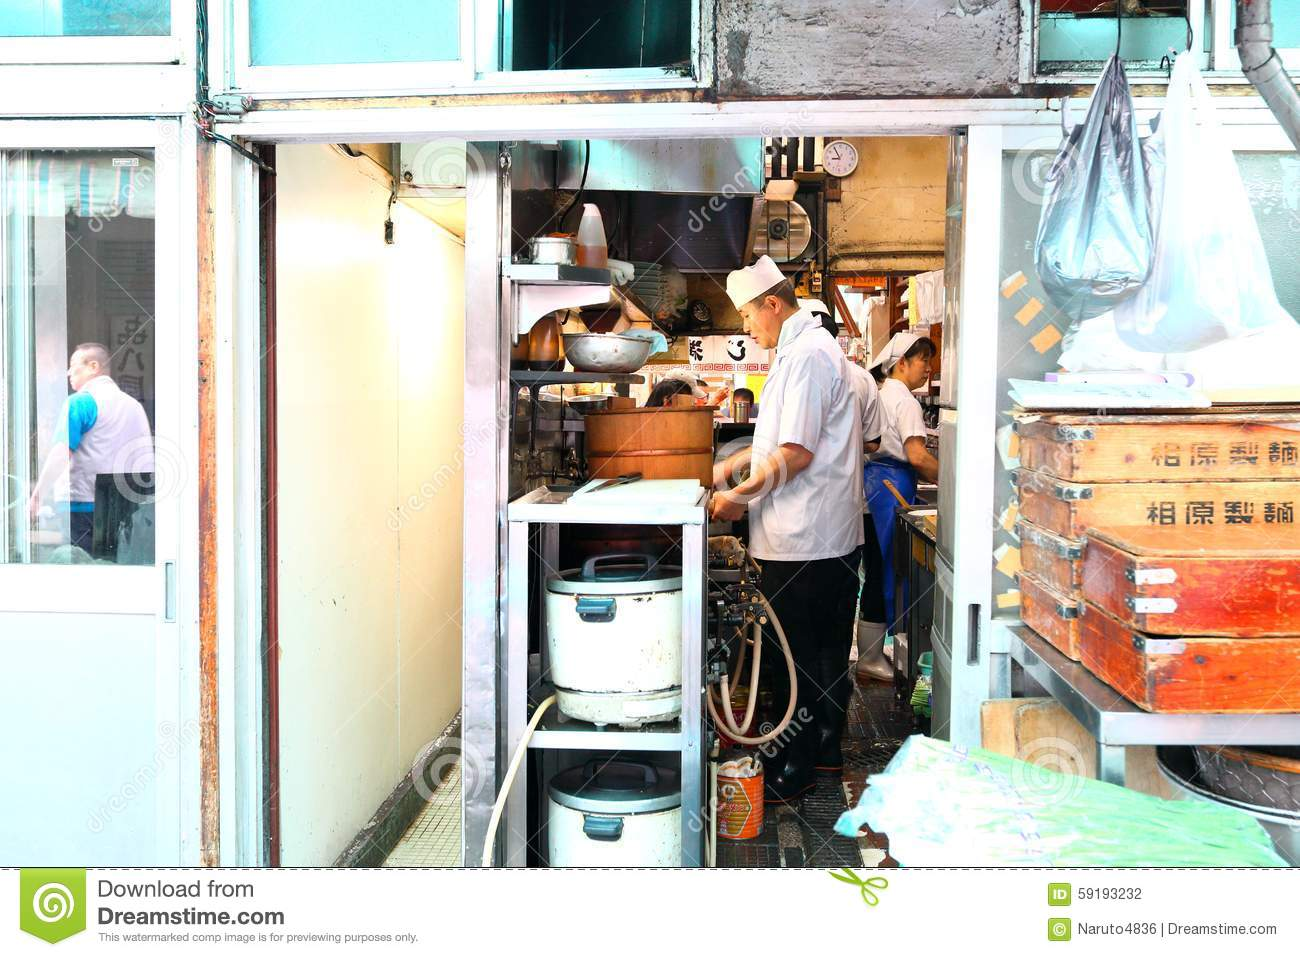 Japan: Cook in the kitchen